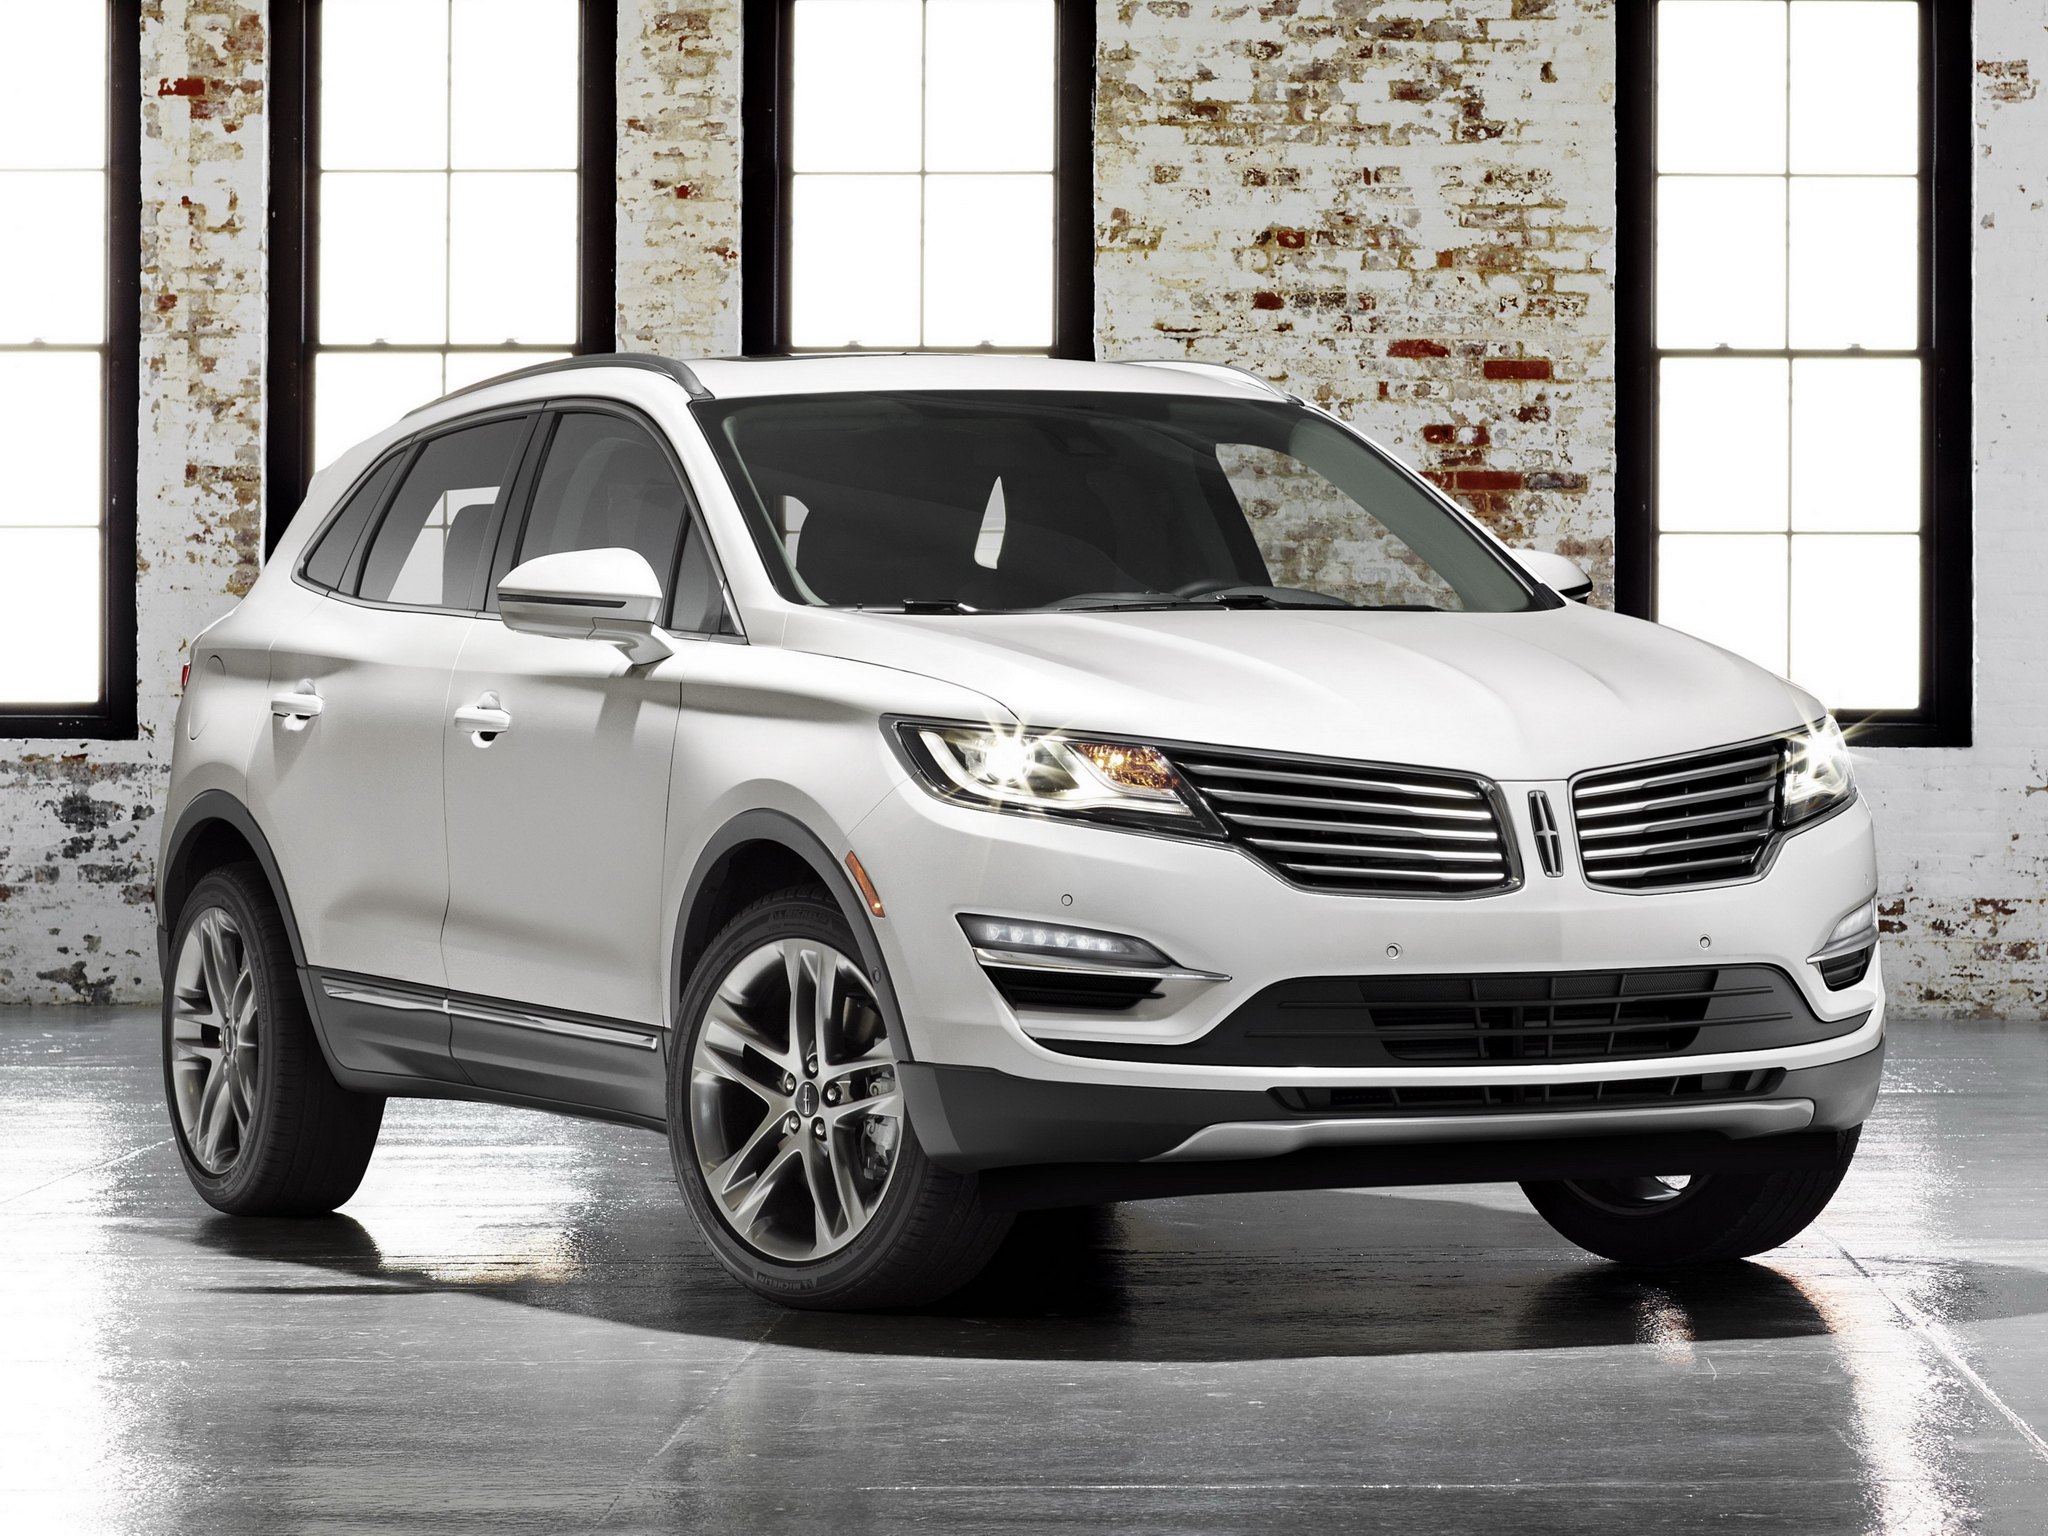 2014 lincoln mkc suv g wallpaper 2048x1536 230808 wallpaperup. Black Bedroom Furniture Sets. Home Design Ideas